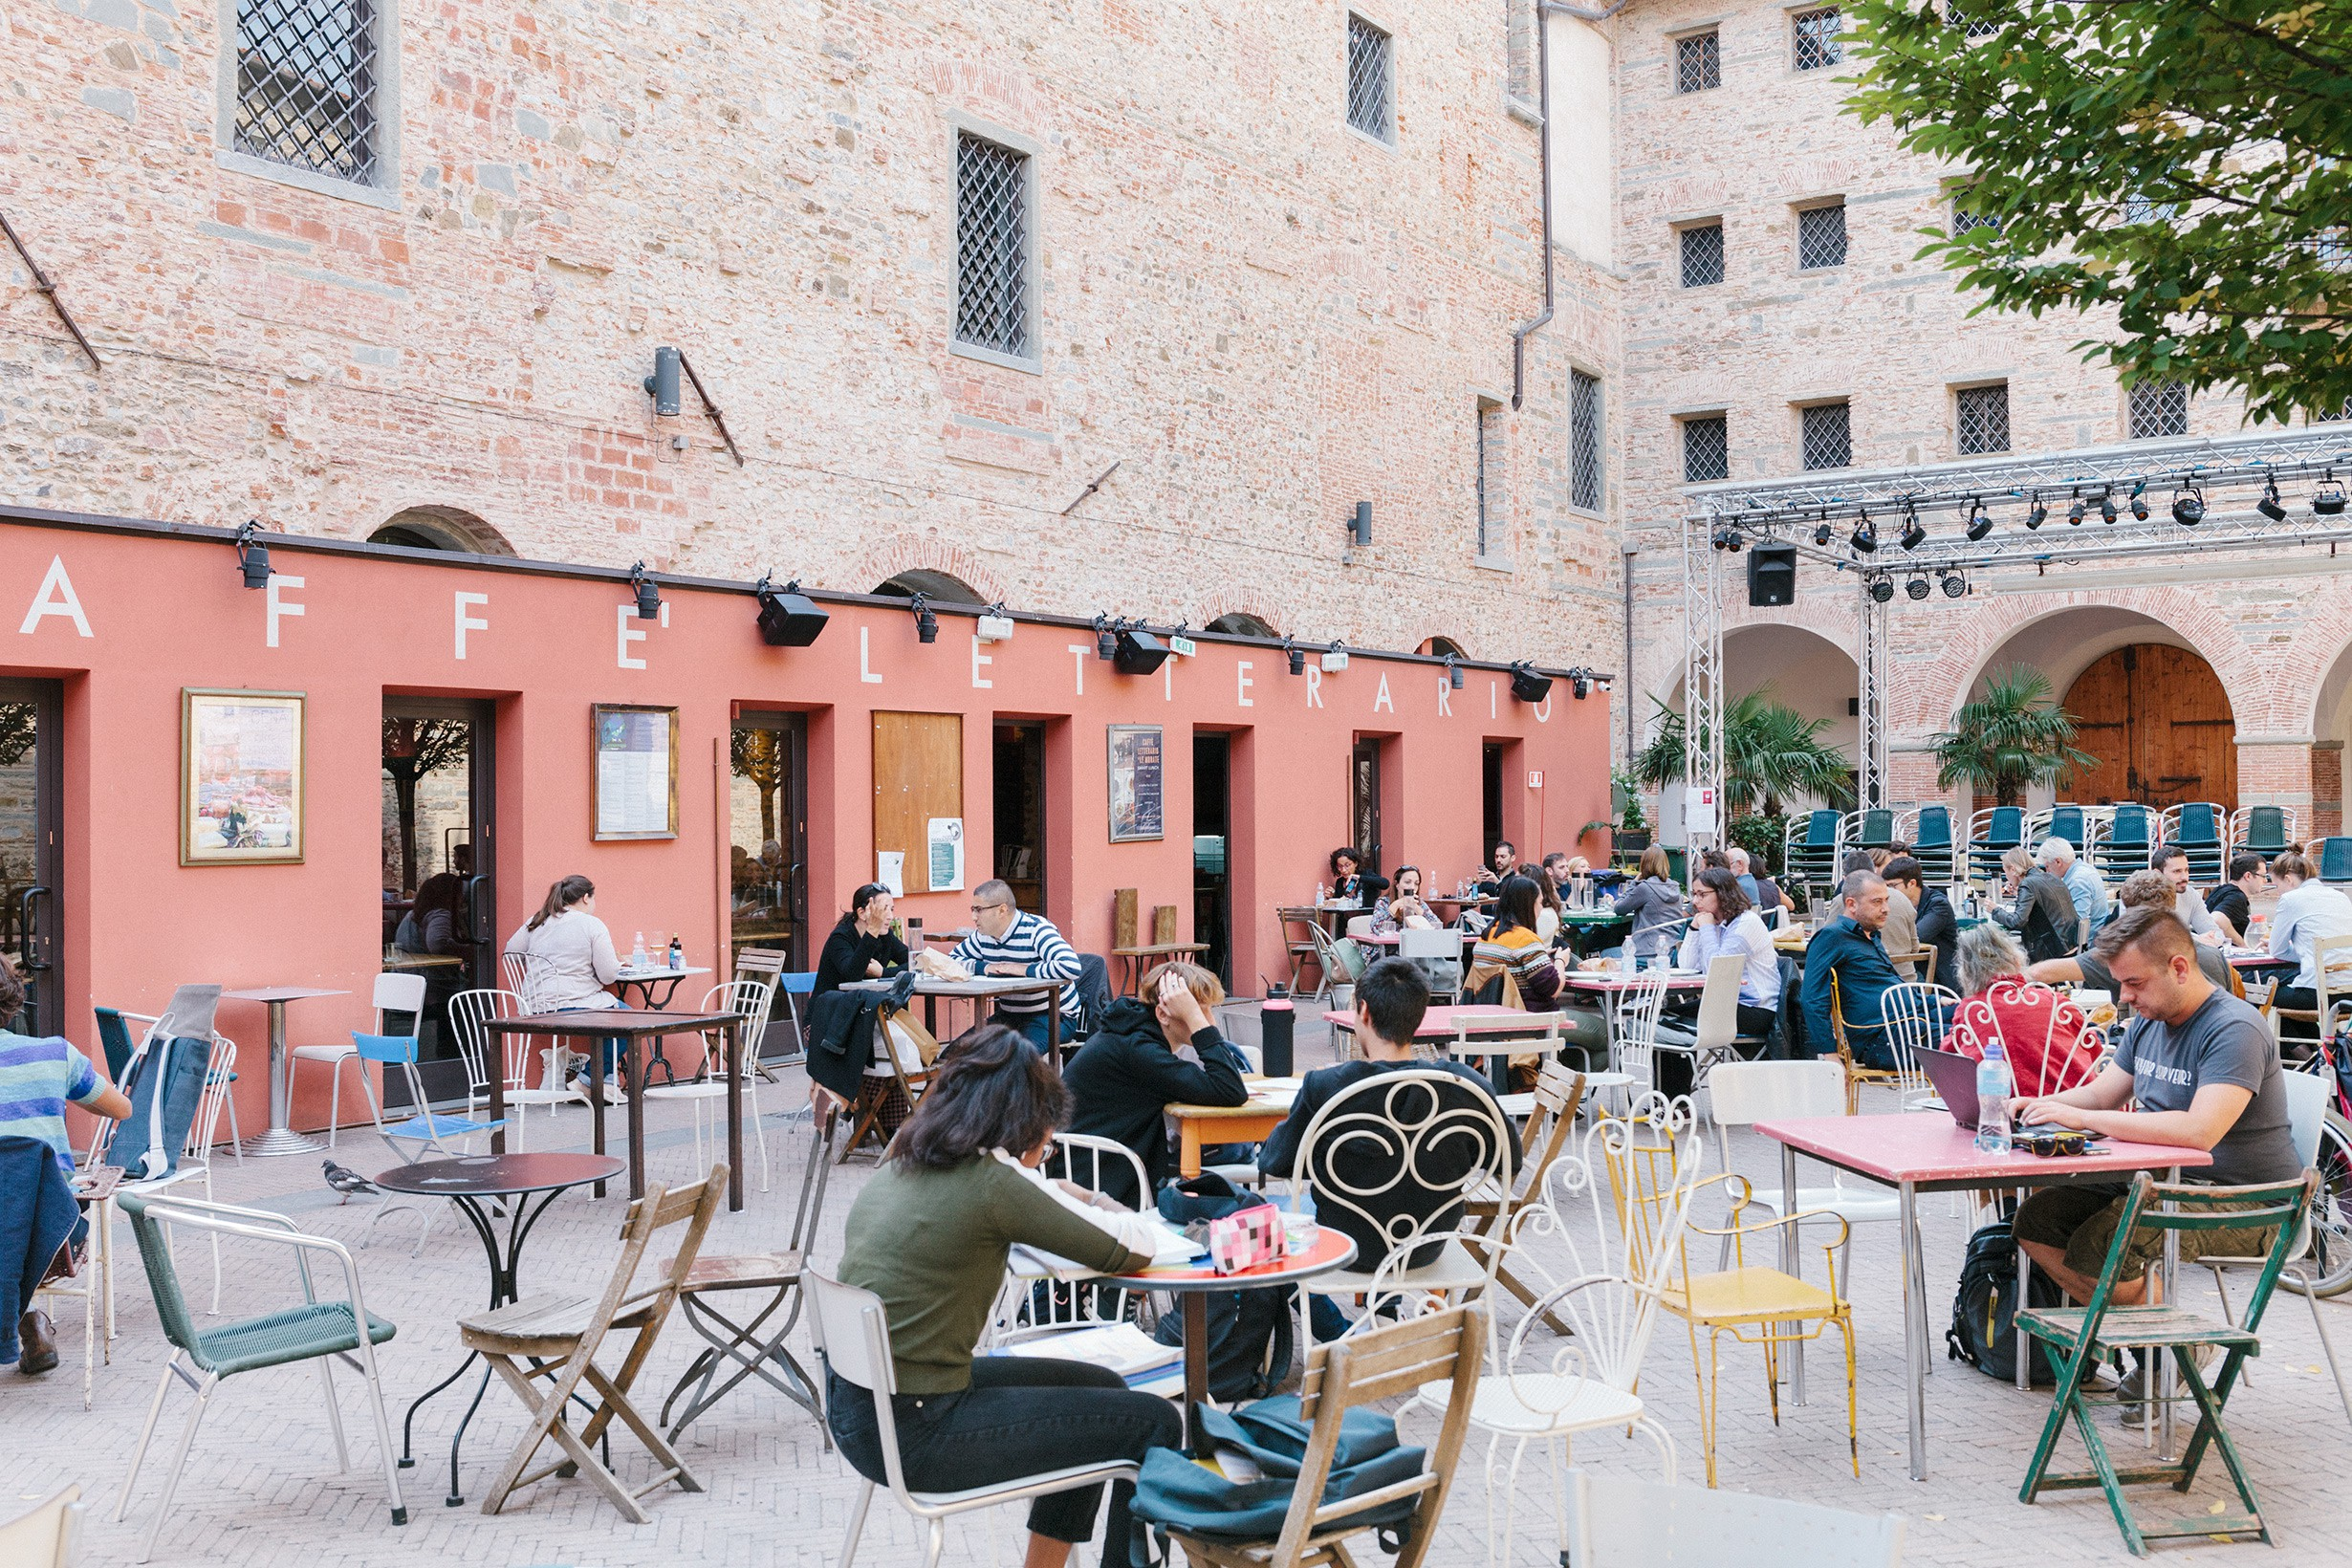 The Best Cafes And Coffee Shops In Florence Italy